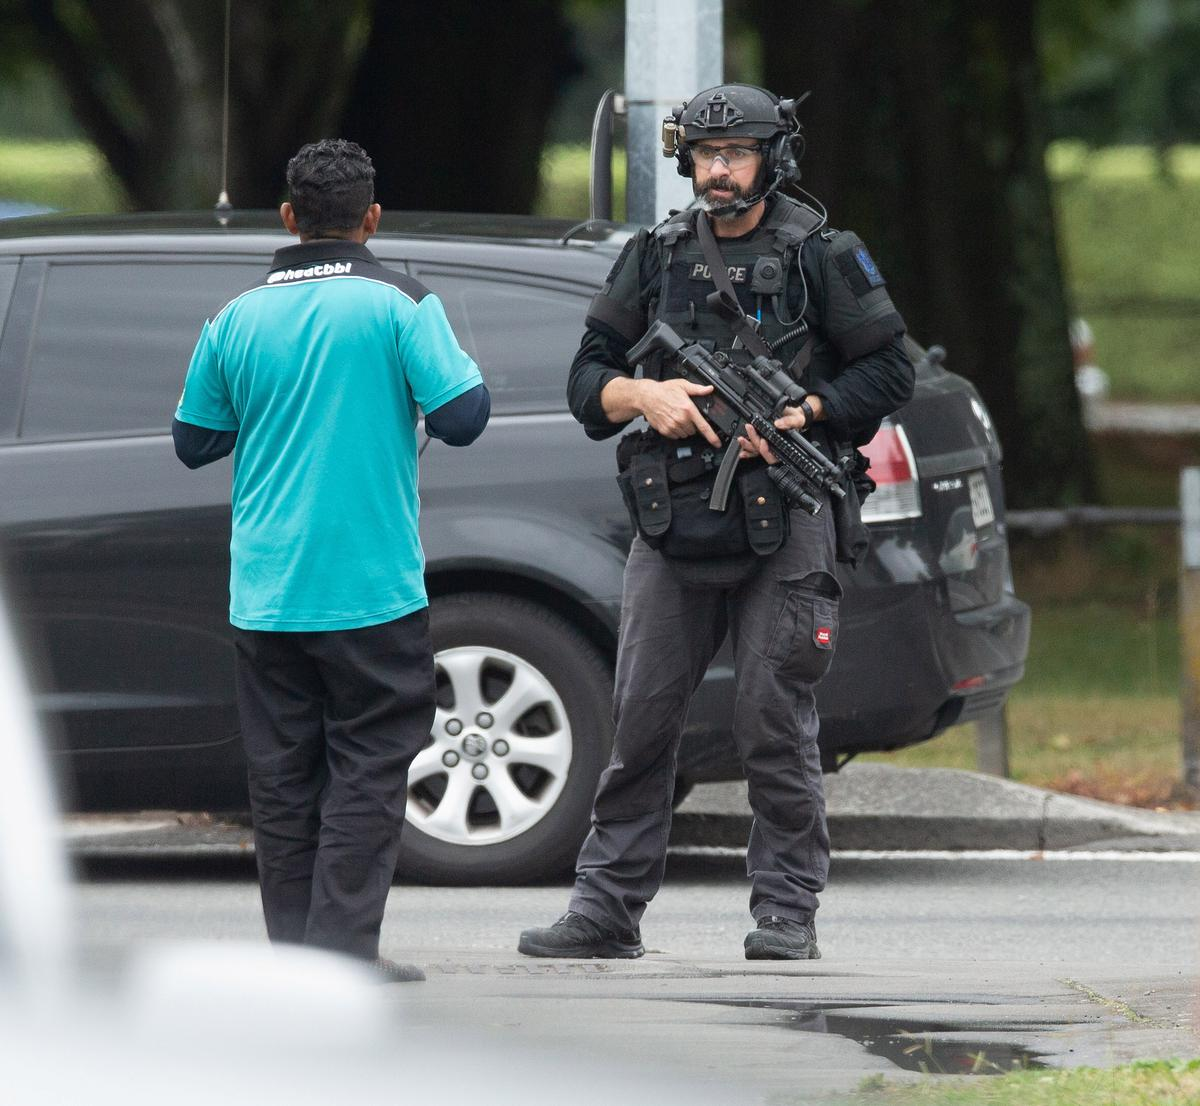 World saddened and angered by New Zealand mosque attacks